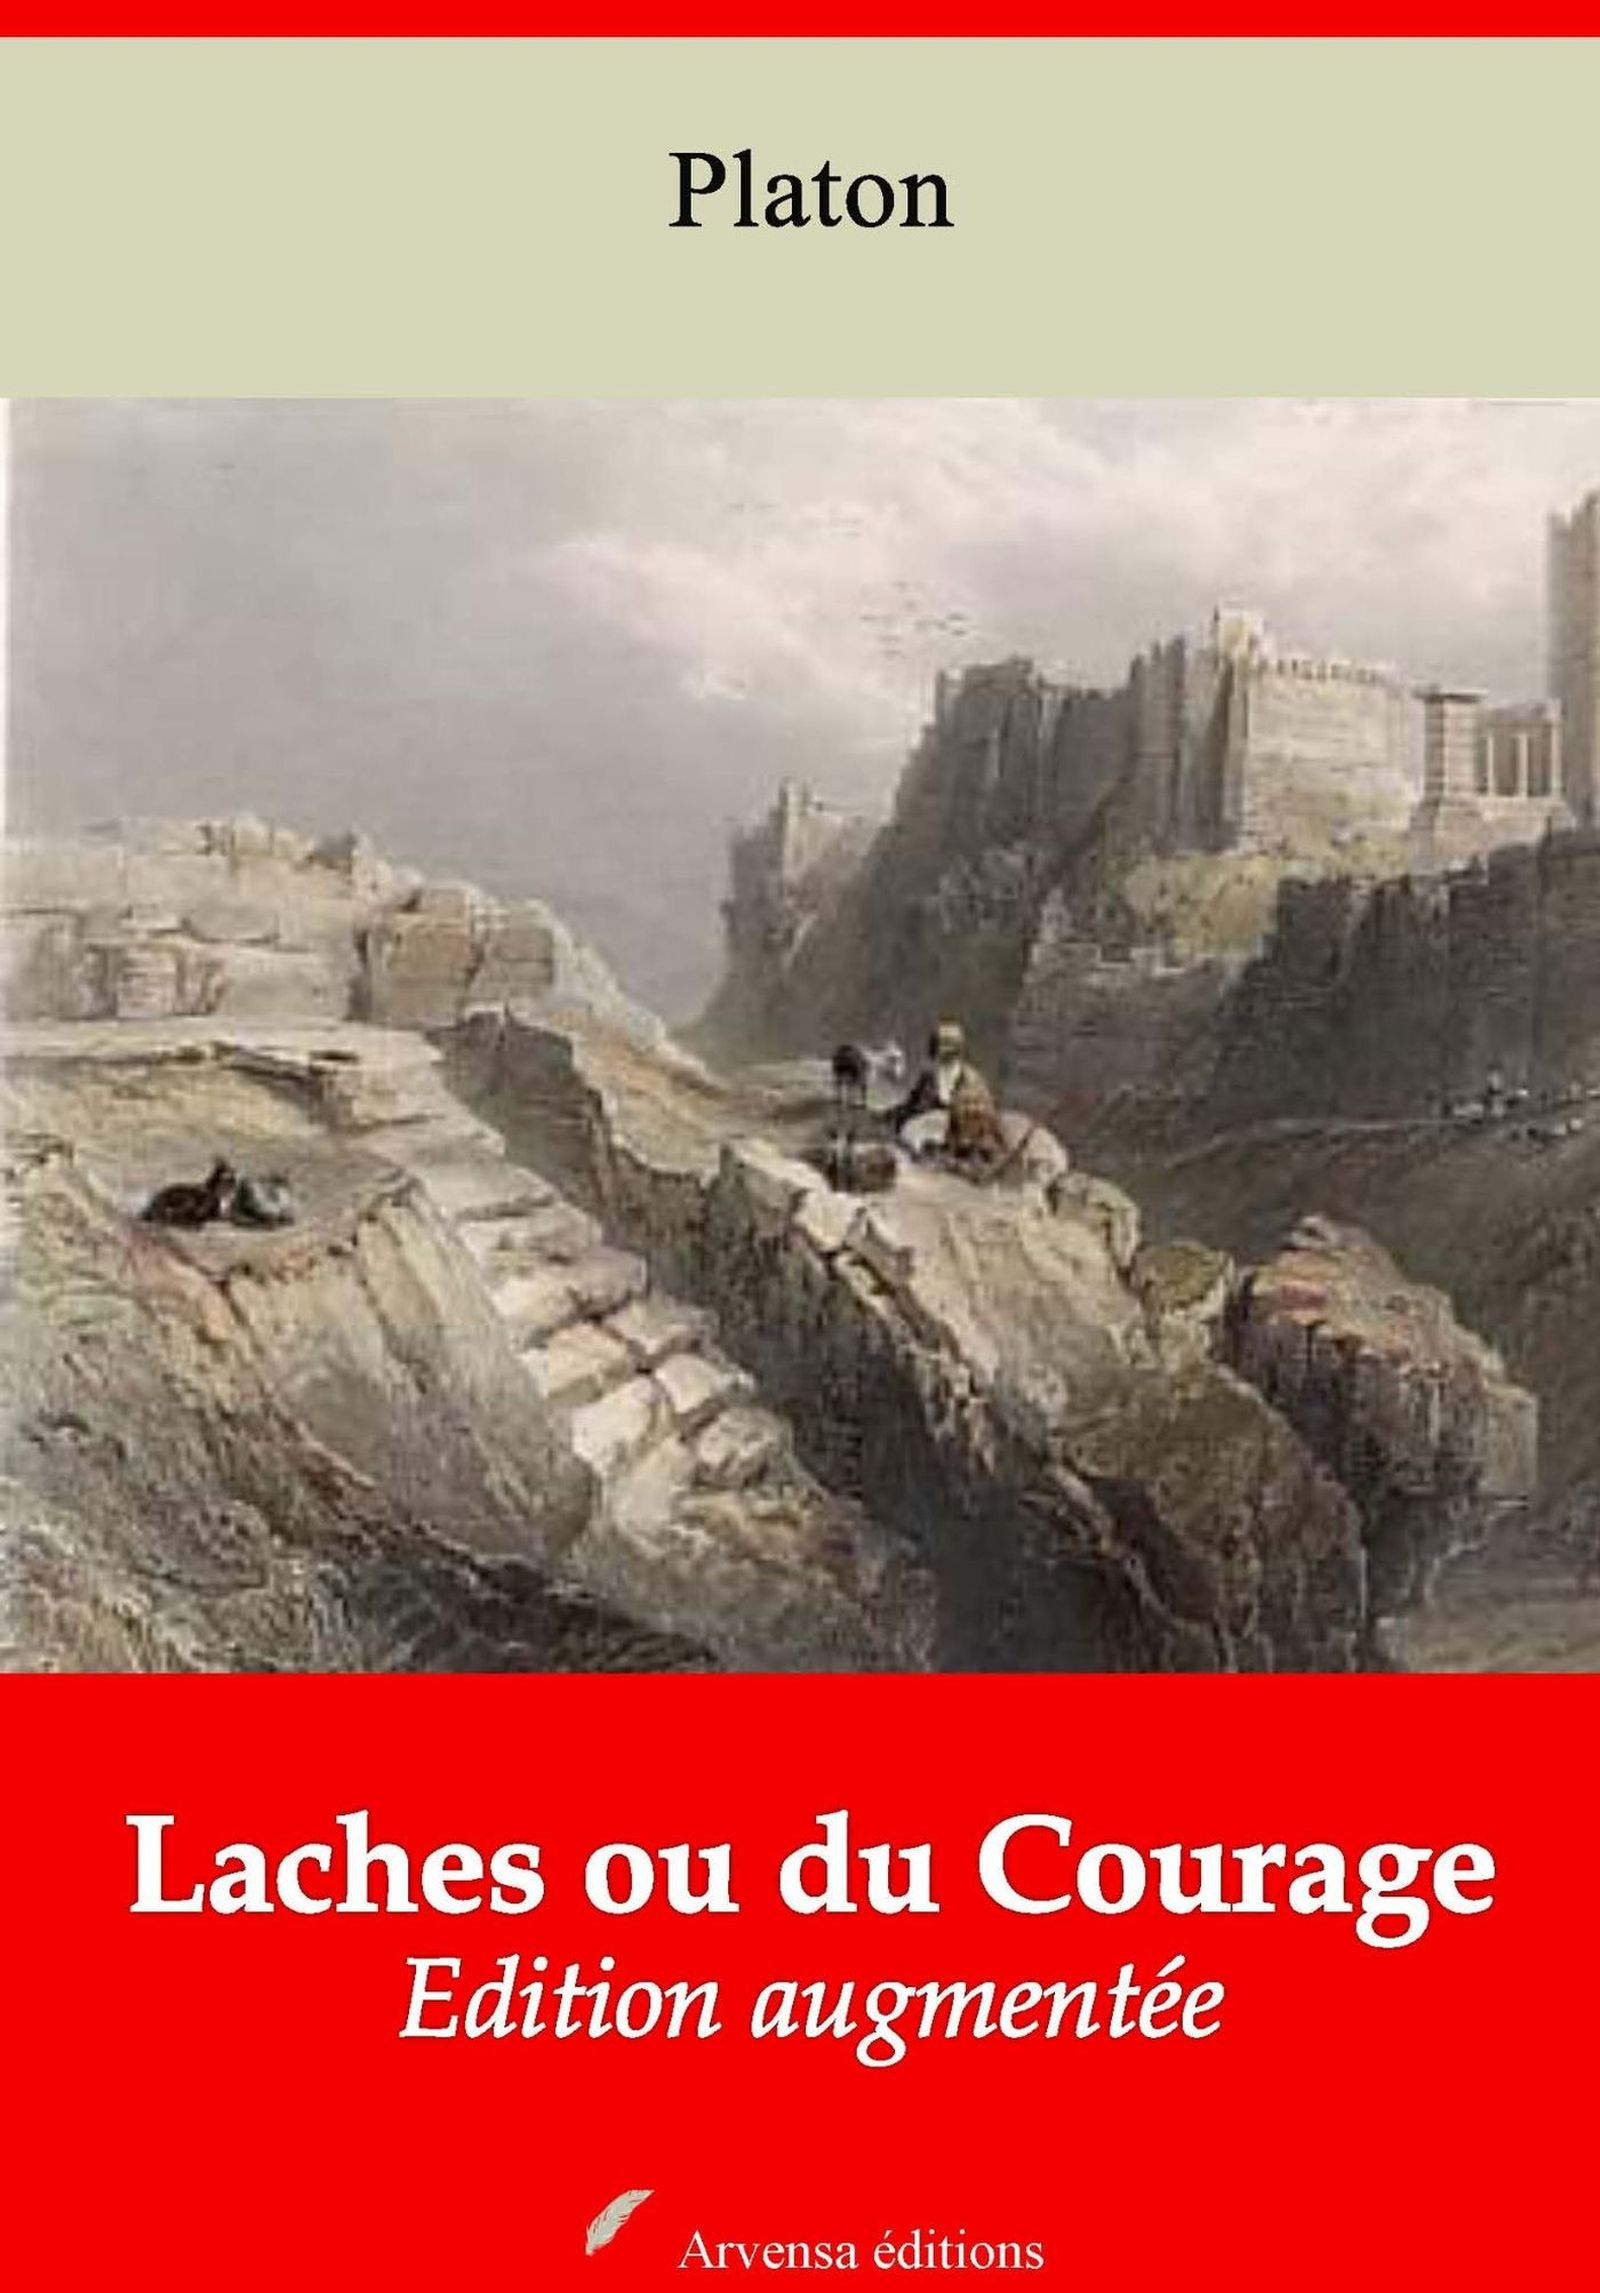 Laches ou du Courage – suivi d'annexes